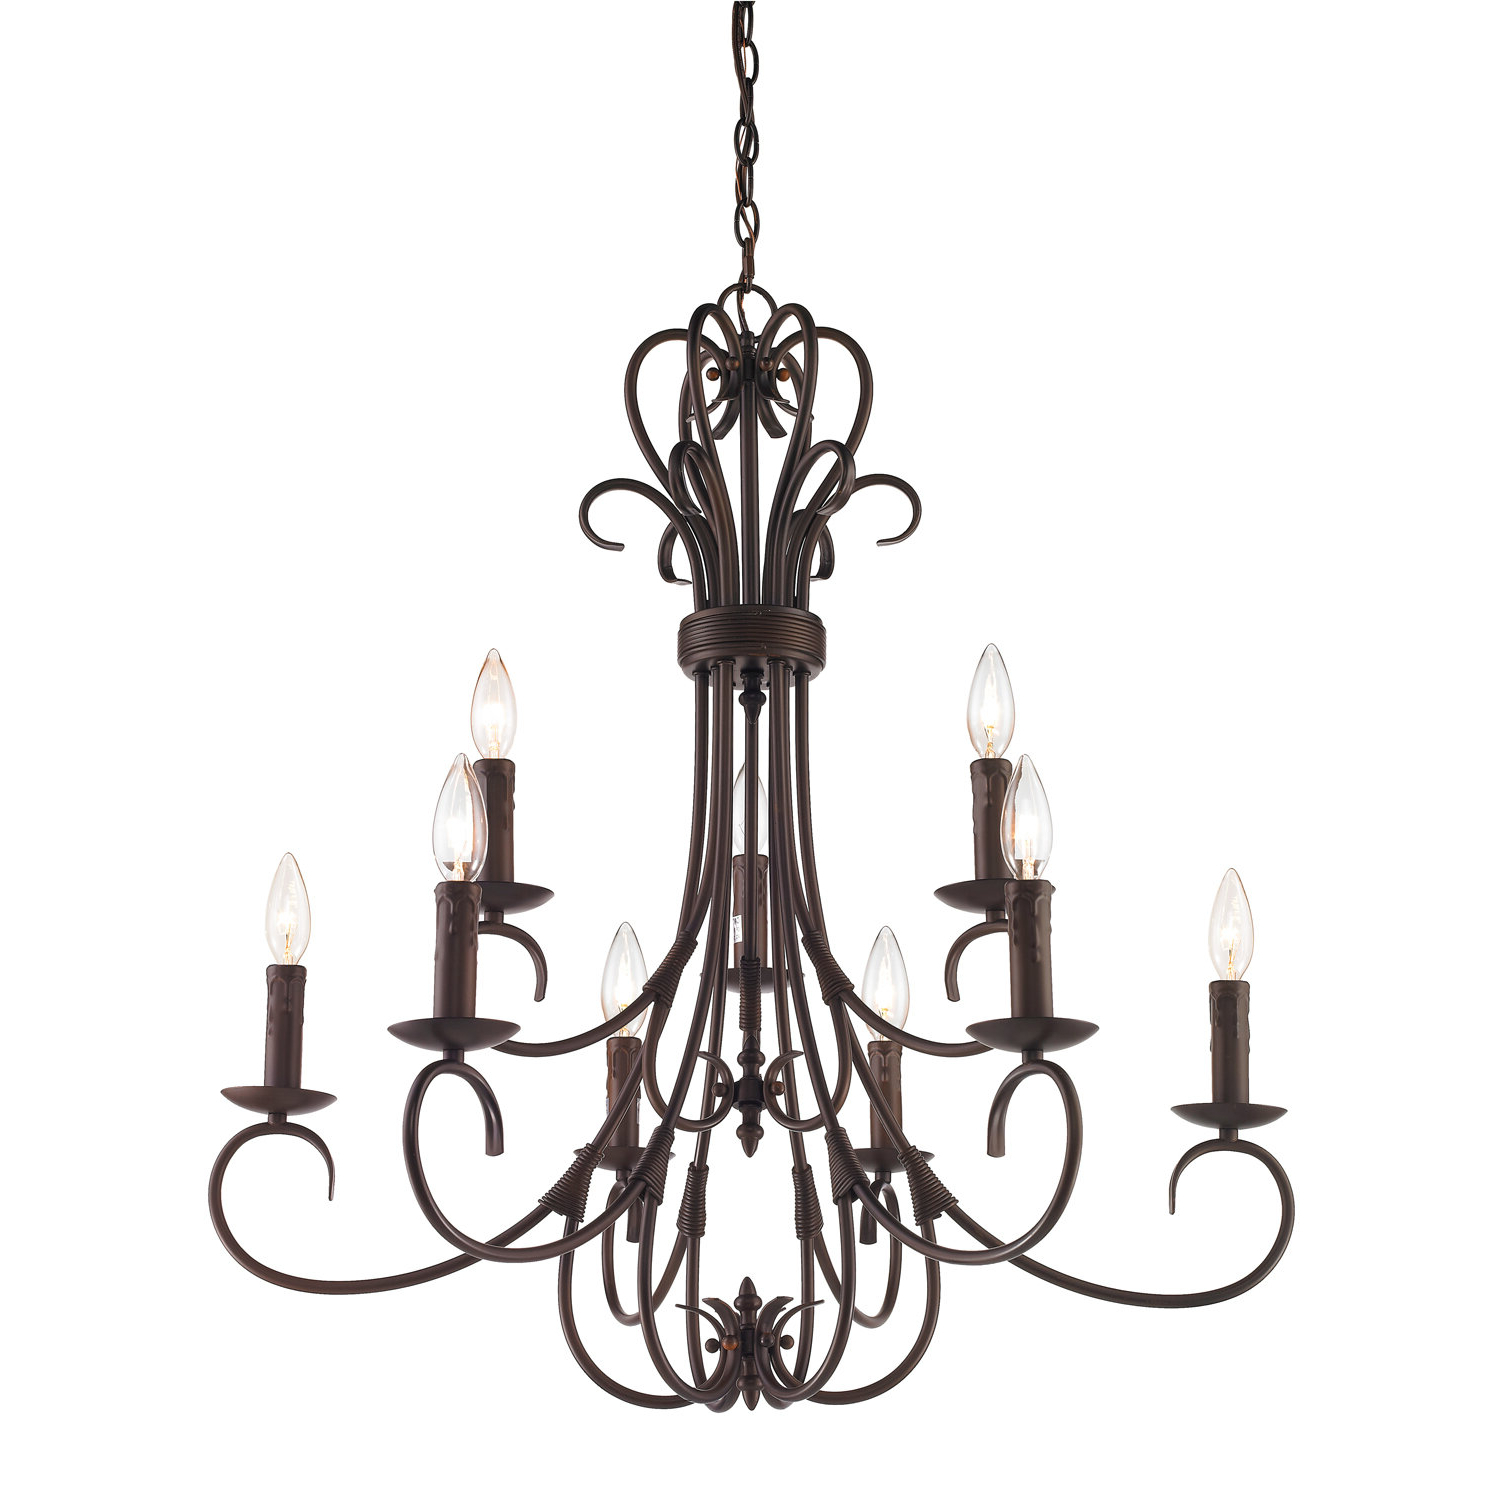 Wayfair For Well Liked Kenedy 9 Light Candle Style Chandeliers (View 24 of 25)